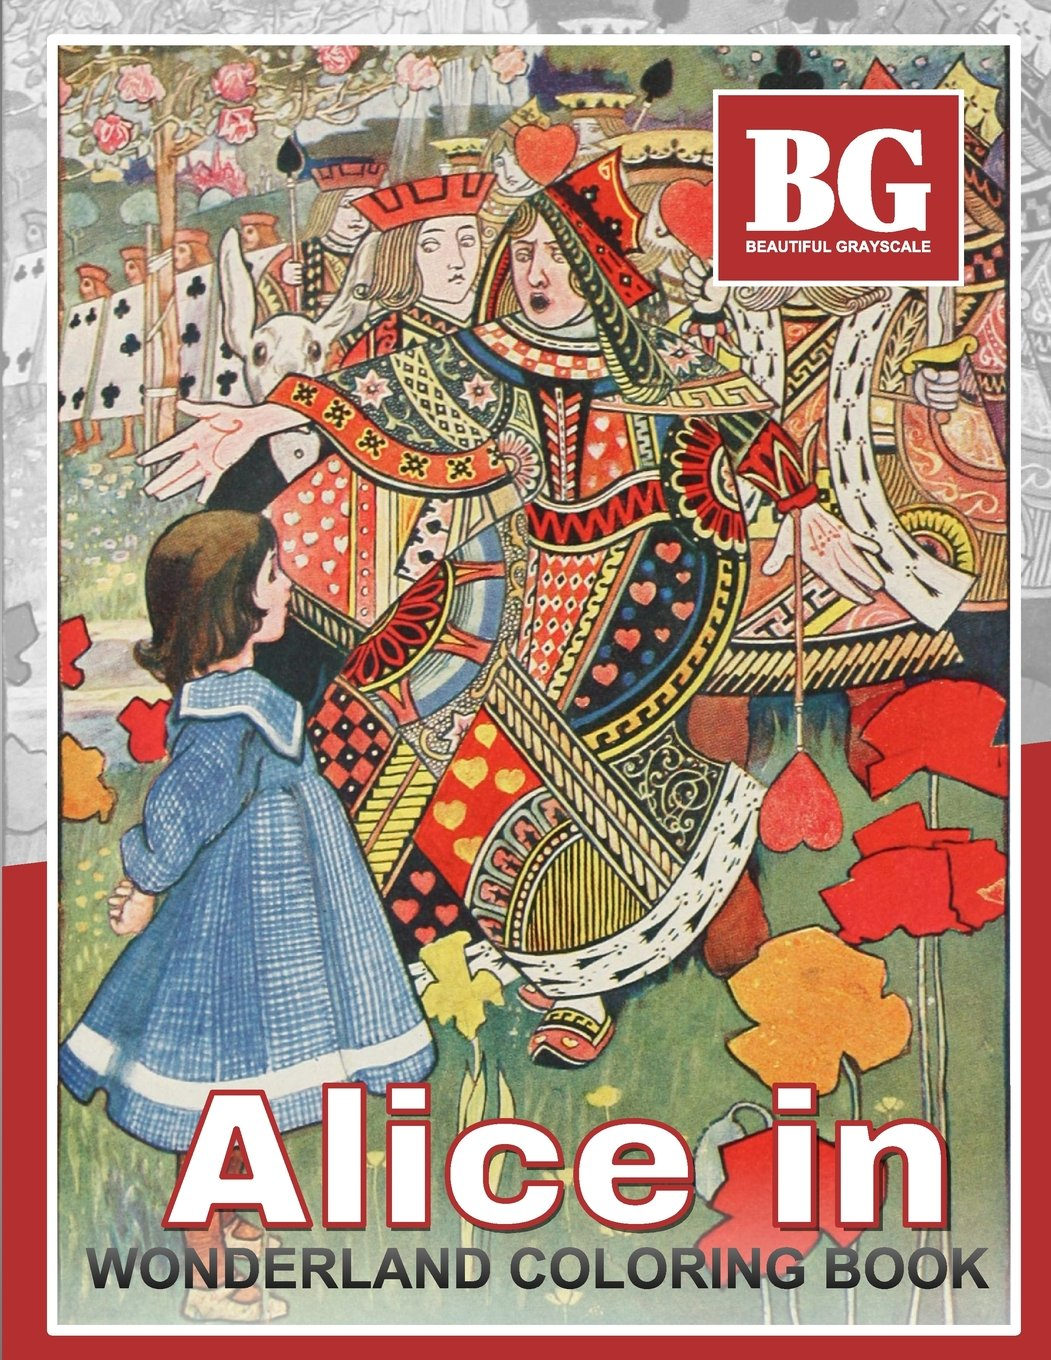 Beautiful Grayscale Alice in Wonderland Coloring Book: Fun and Realistic Photo Coloring for Kids and Adults